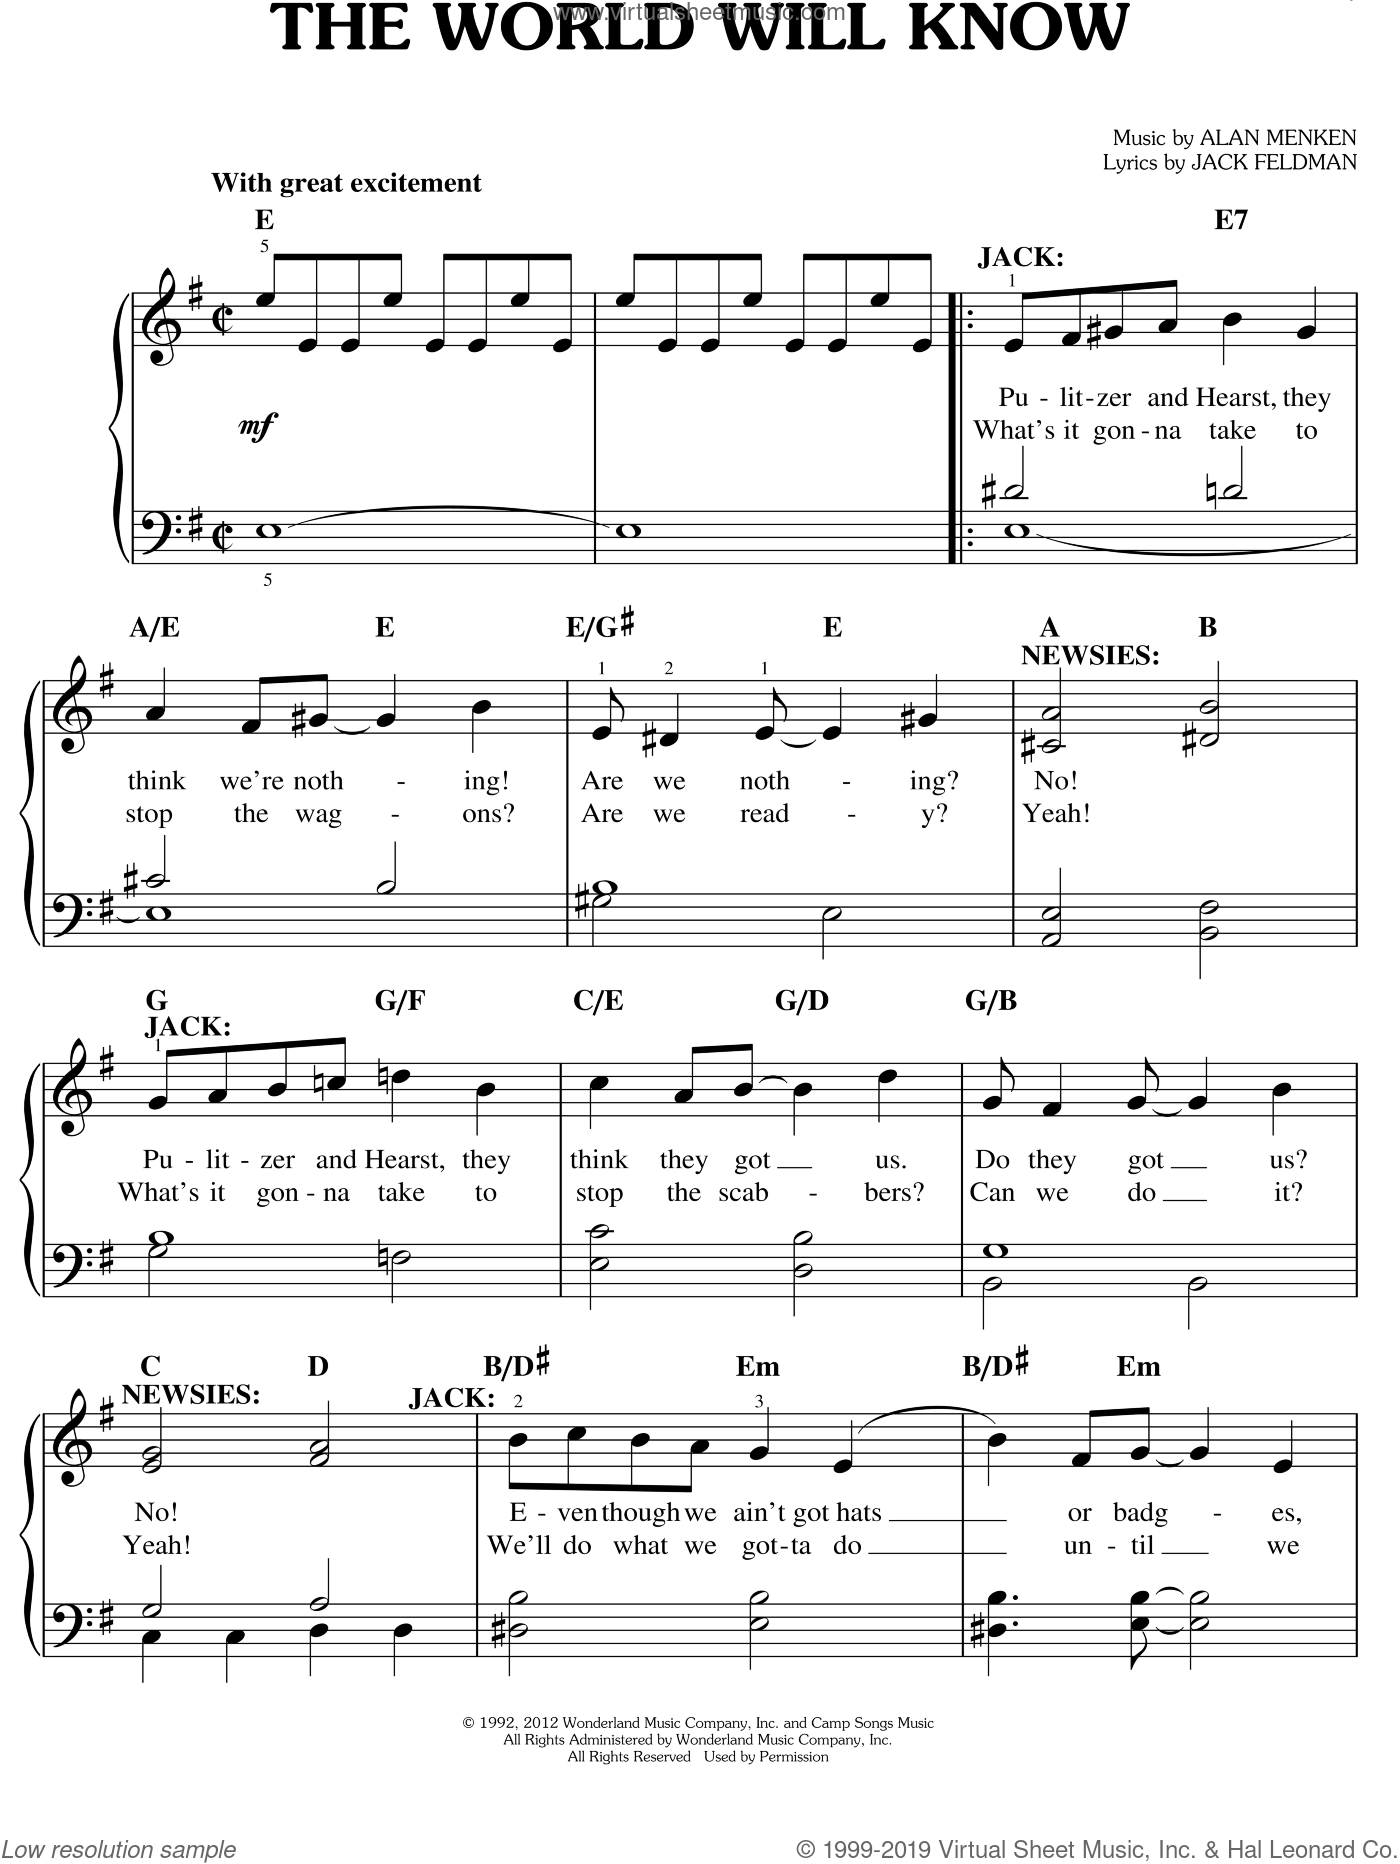 The World Will Know sheet music for piano solo (chords) by Jack Feldman